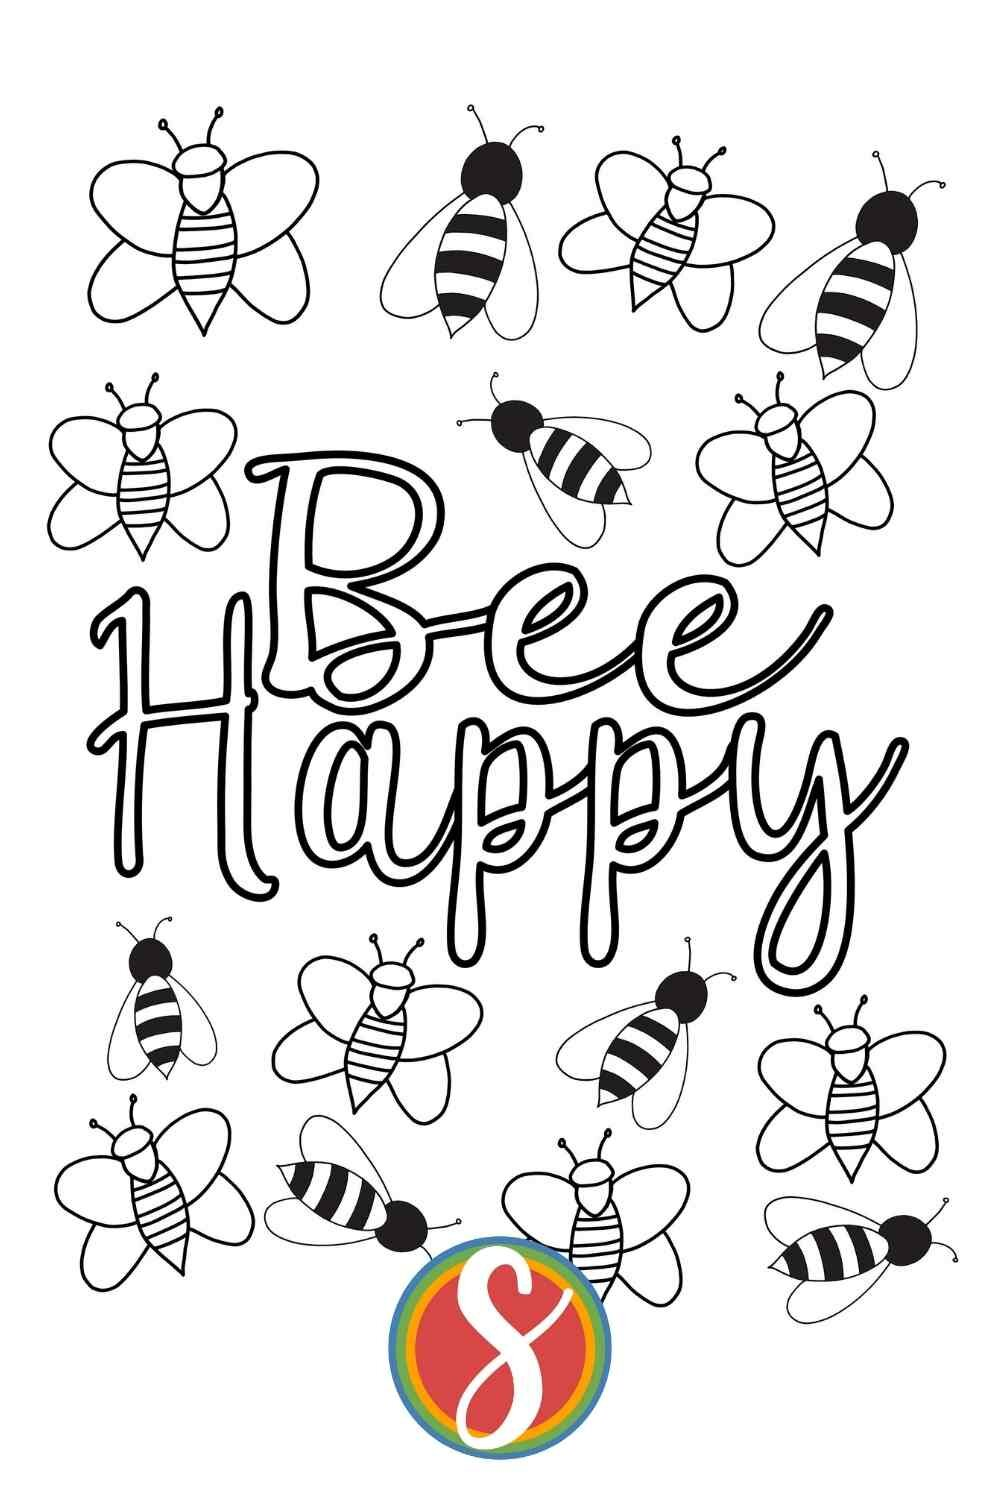 """Free bees coloring page with """"Bee happy"""" colorable text - a whole bunch of bees on this fun and free coloring page from Stevie Doodles. Bee Happy!"""